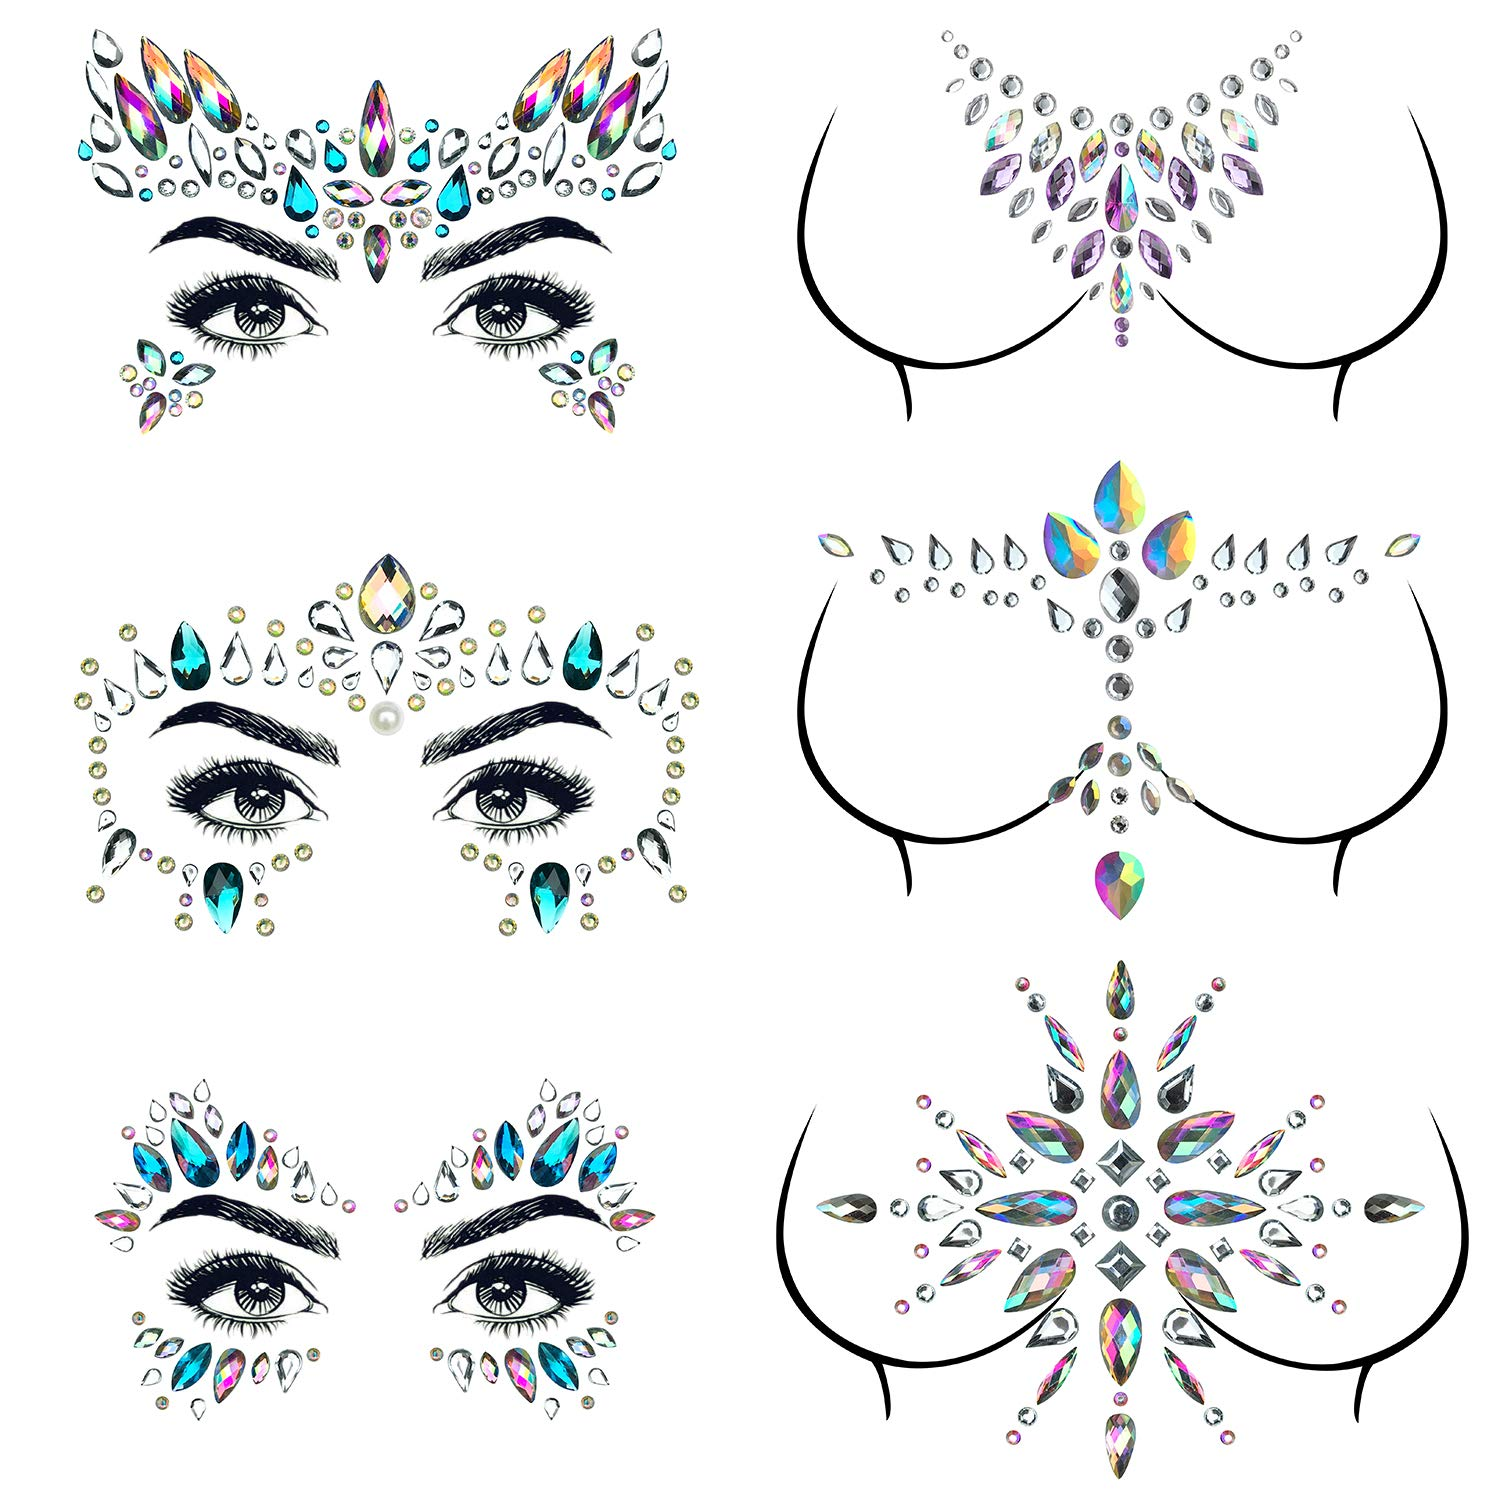 6 Sets Mermaid Face Jewels Gems Festival Face Rhinestone Eyes Breast Body Gems Tattoos Crystal Glitter Chest Forehead Face Diamond Stickers For Women Girls